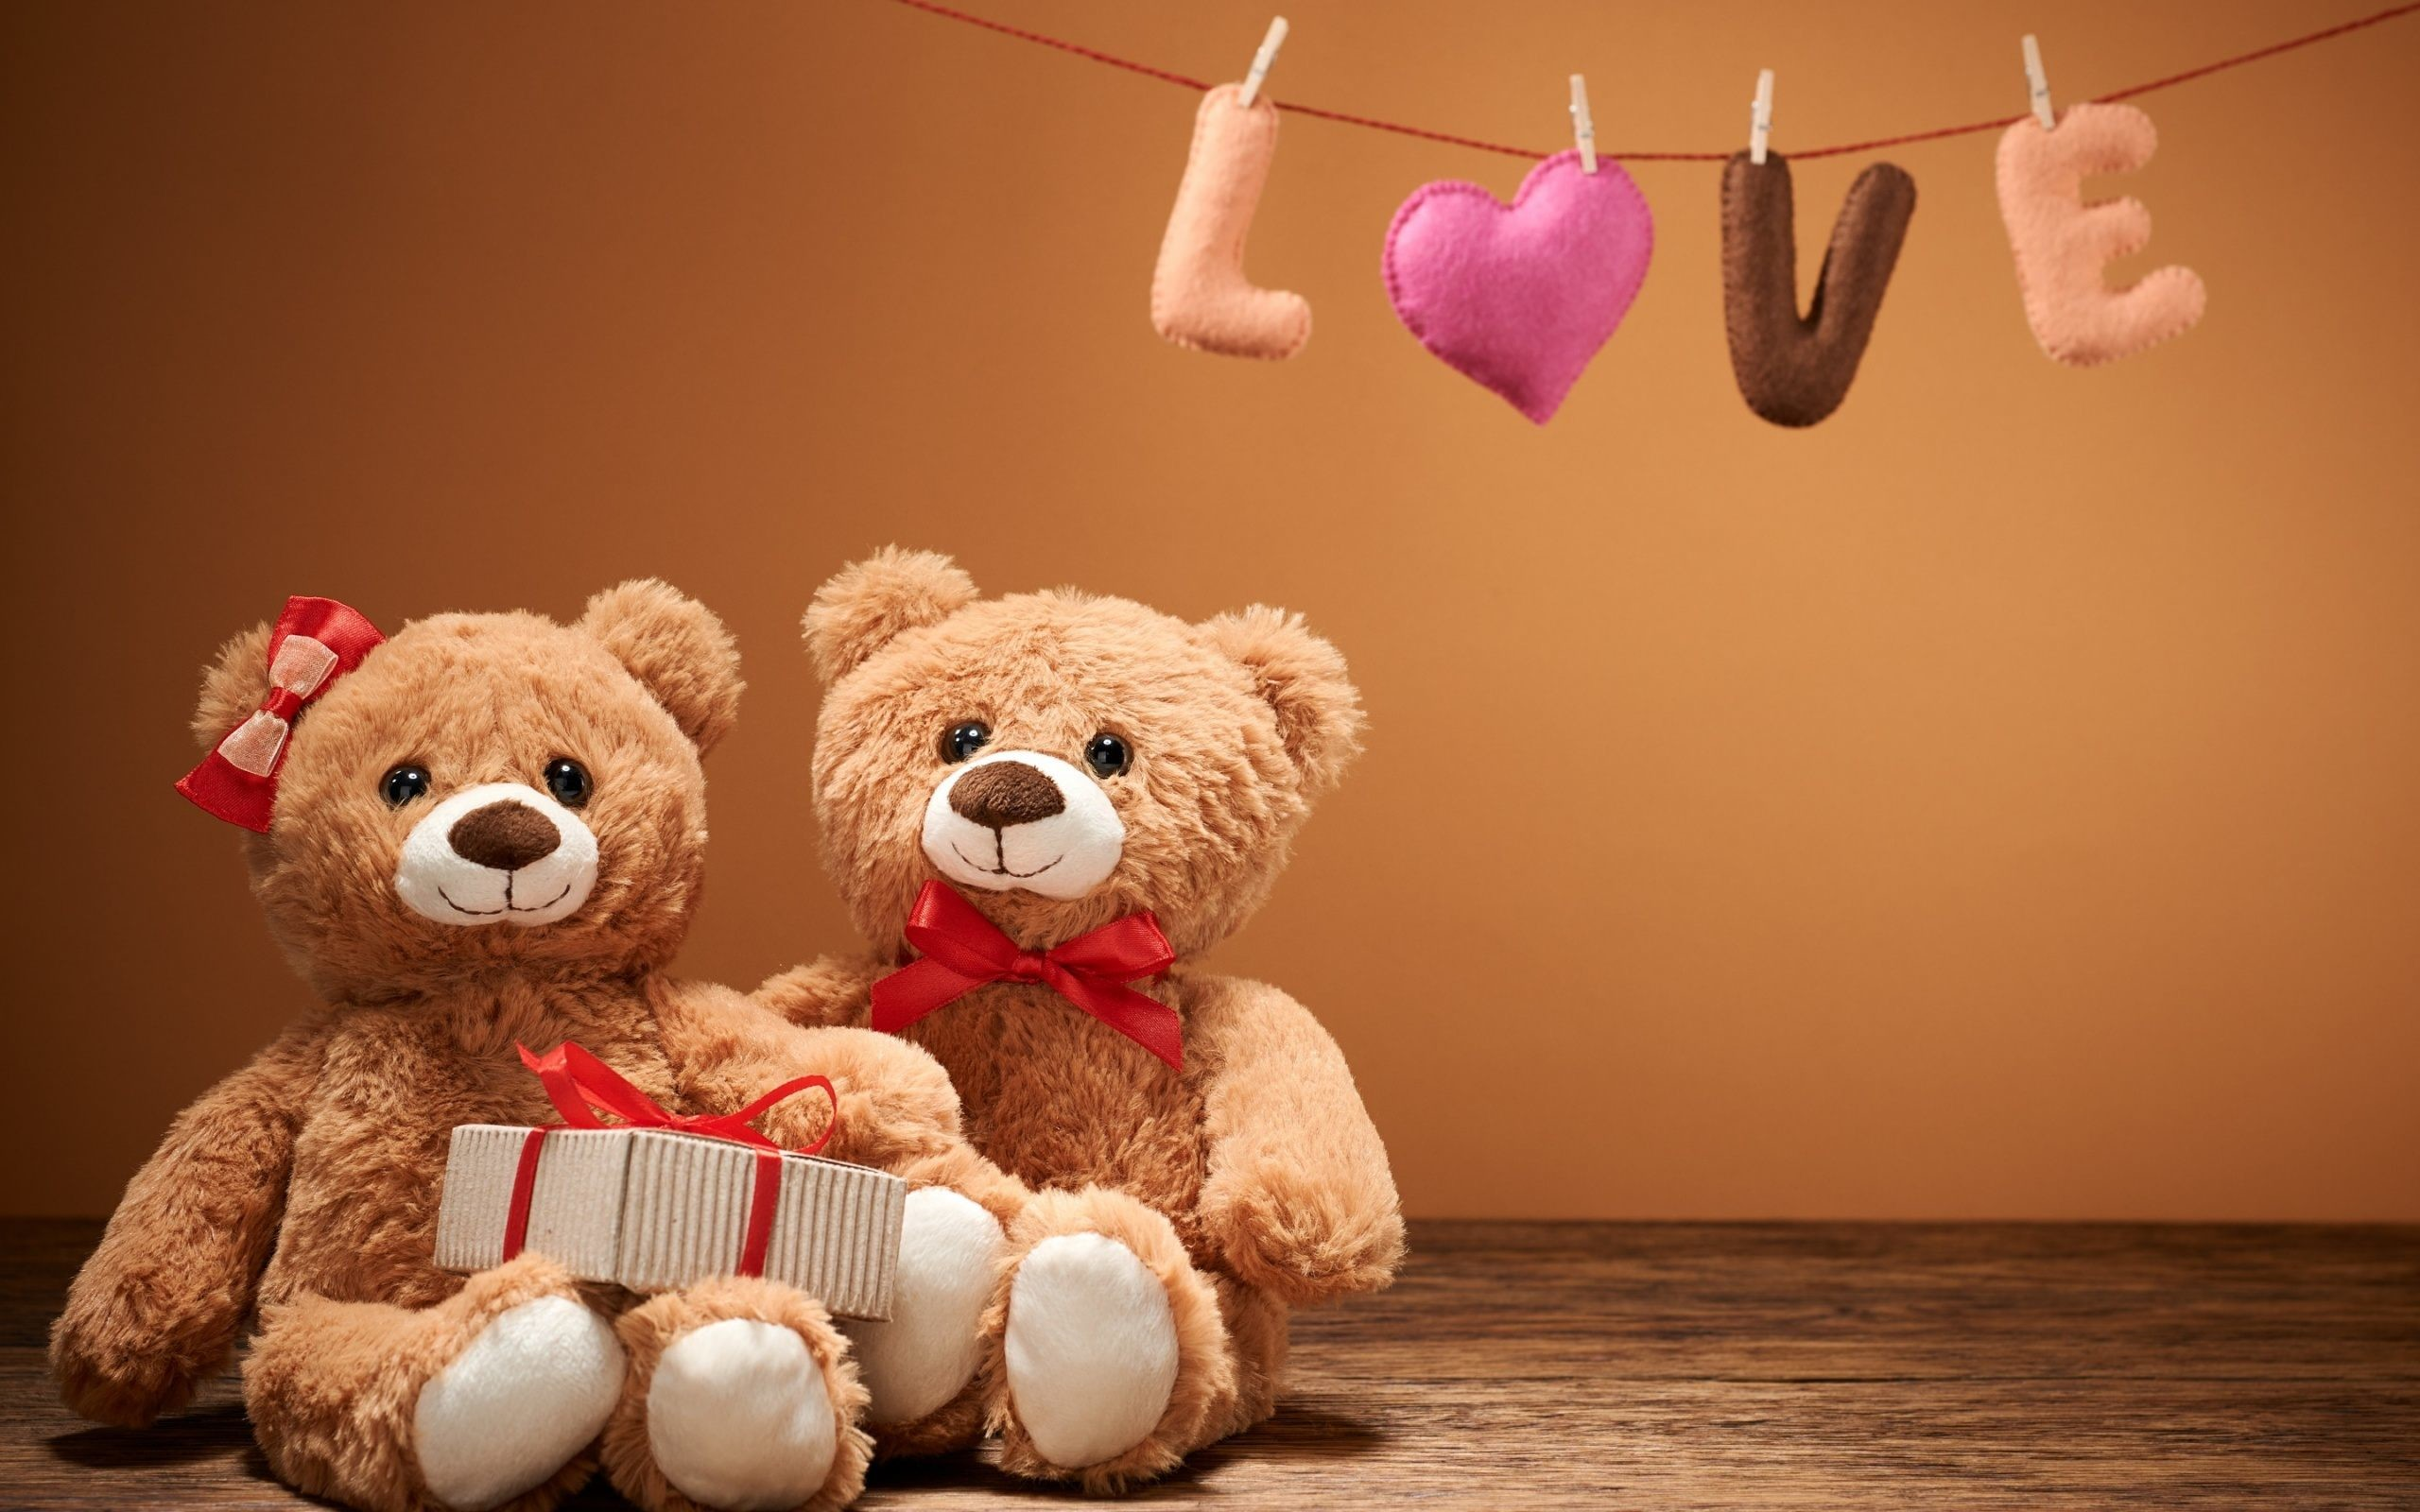 Love Quotes With Teddy Bear Images: Love Teddy Bear Wallpapers (48+ Images